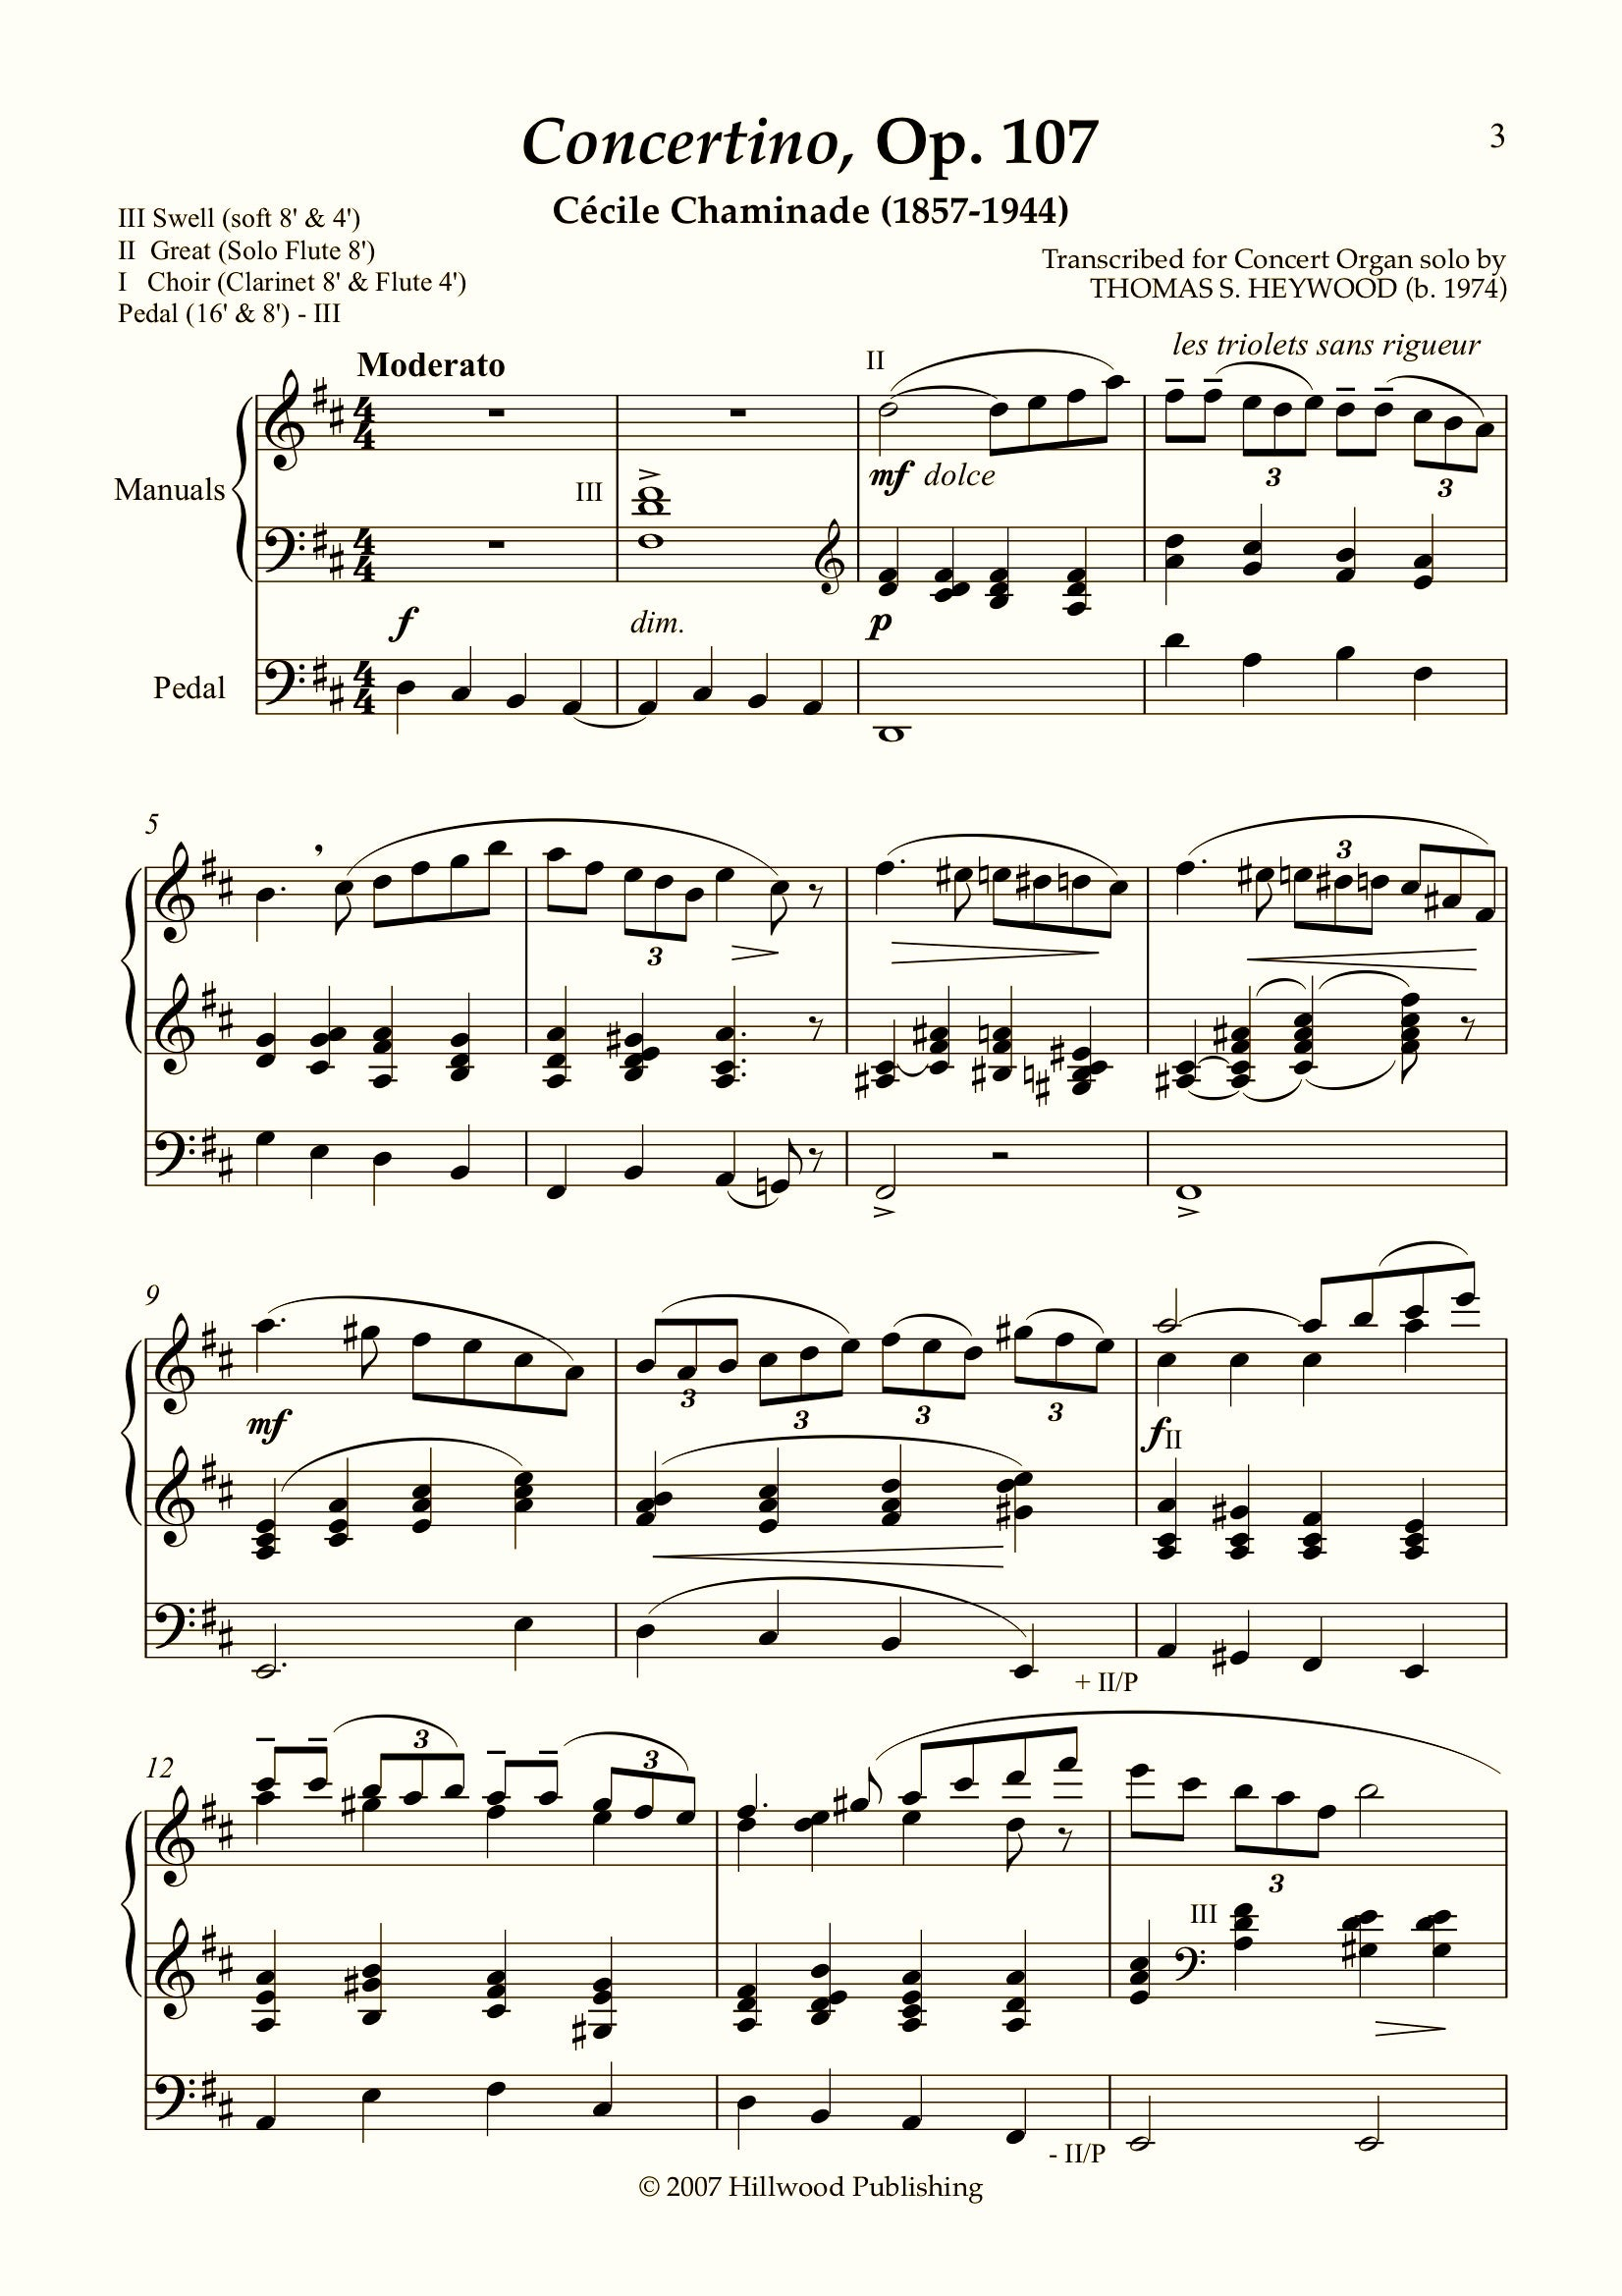 Chaminade/Heywood - Concertino, Op. 107 (Score) - Concert Organ International